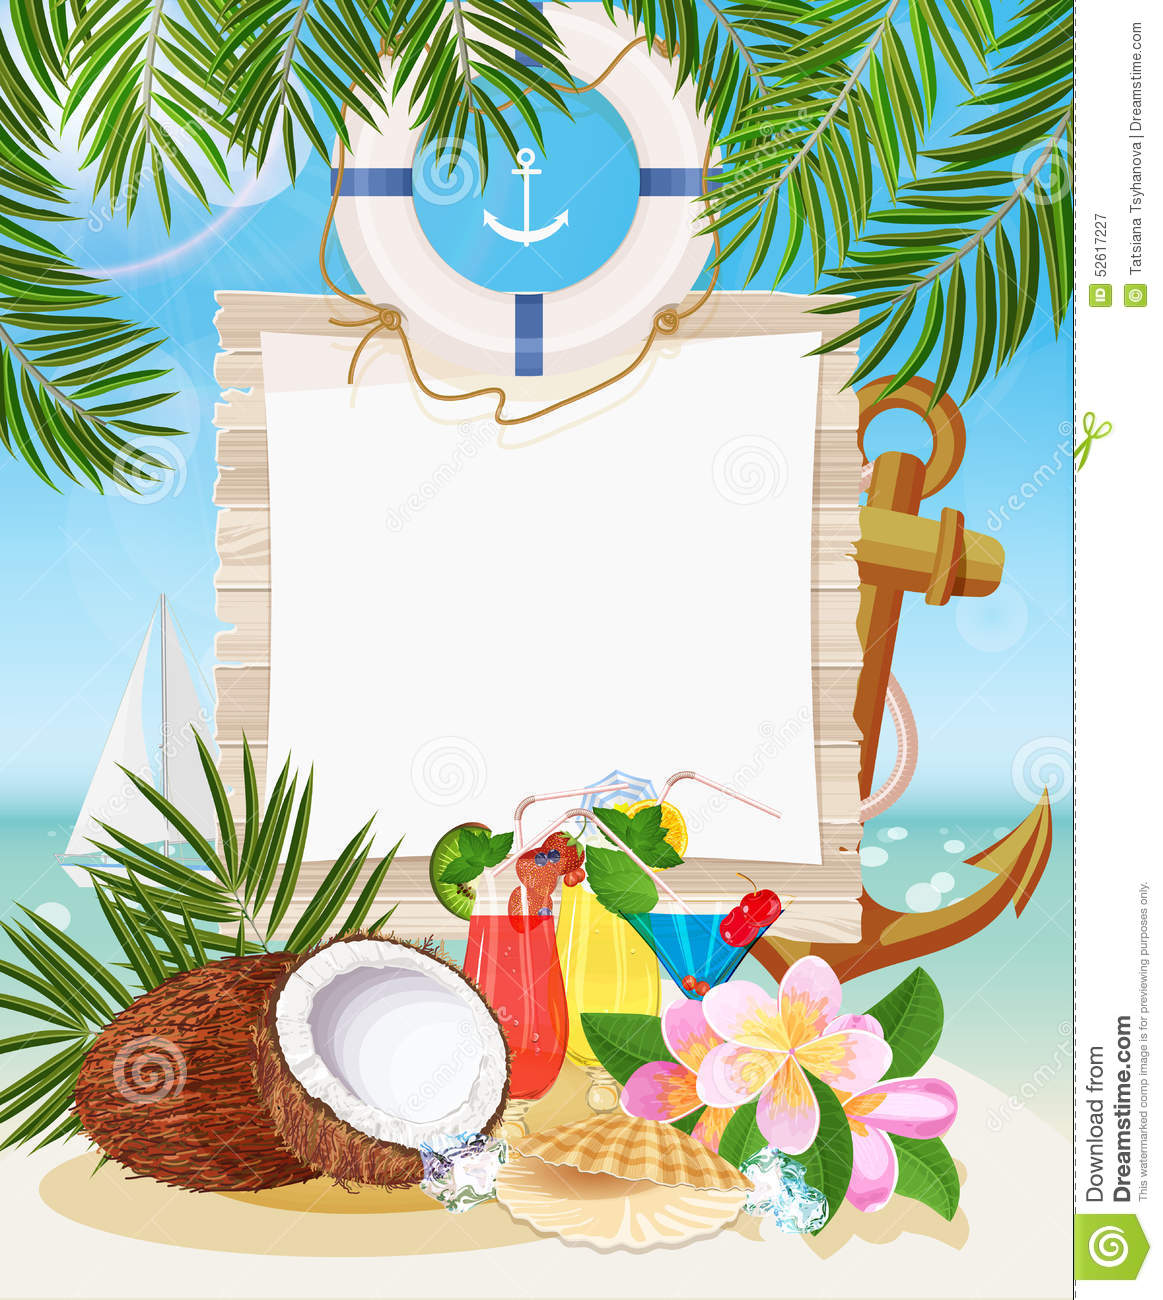 Beautiful Sunny Day At Tropical Beach Royalty Free Stock: Tropical Beach Bar Stock Vector